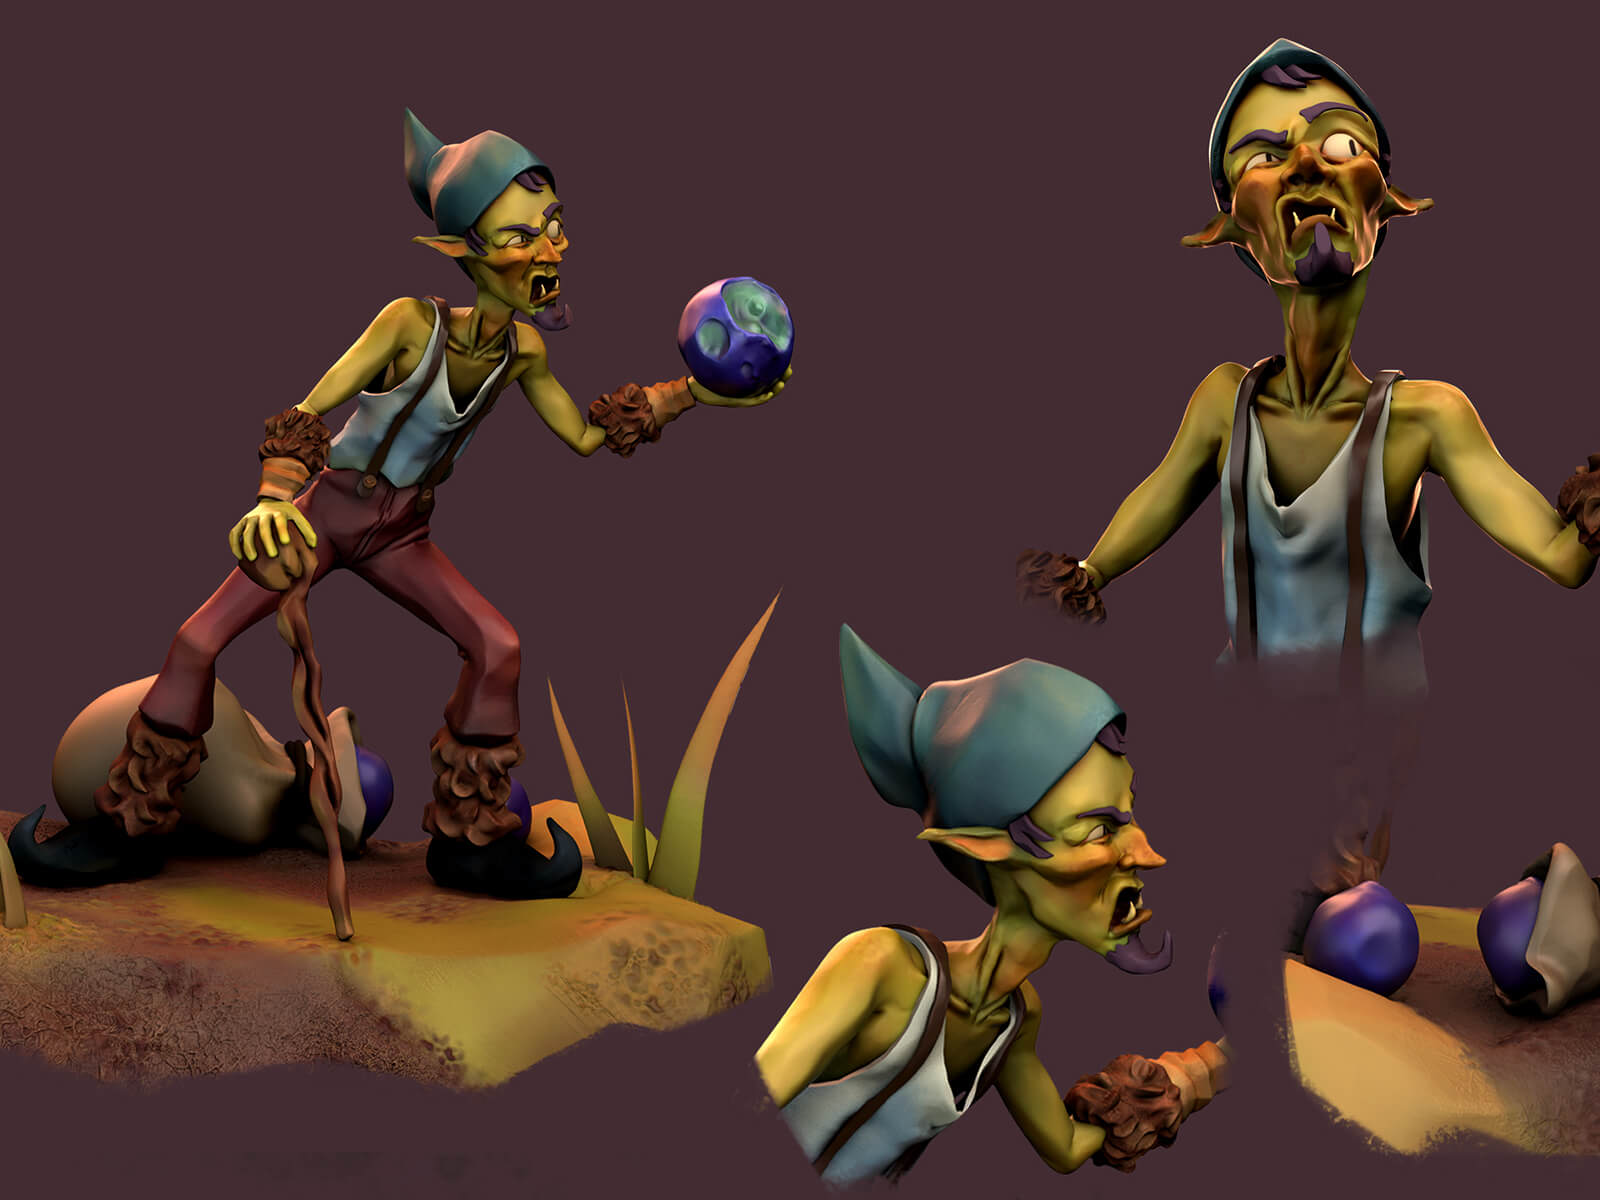 Multiple views of an elf wearing a pointy hat, carrying a ball